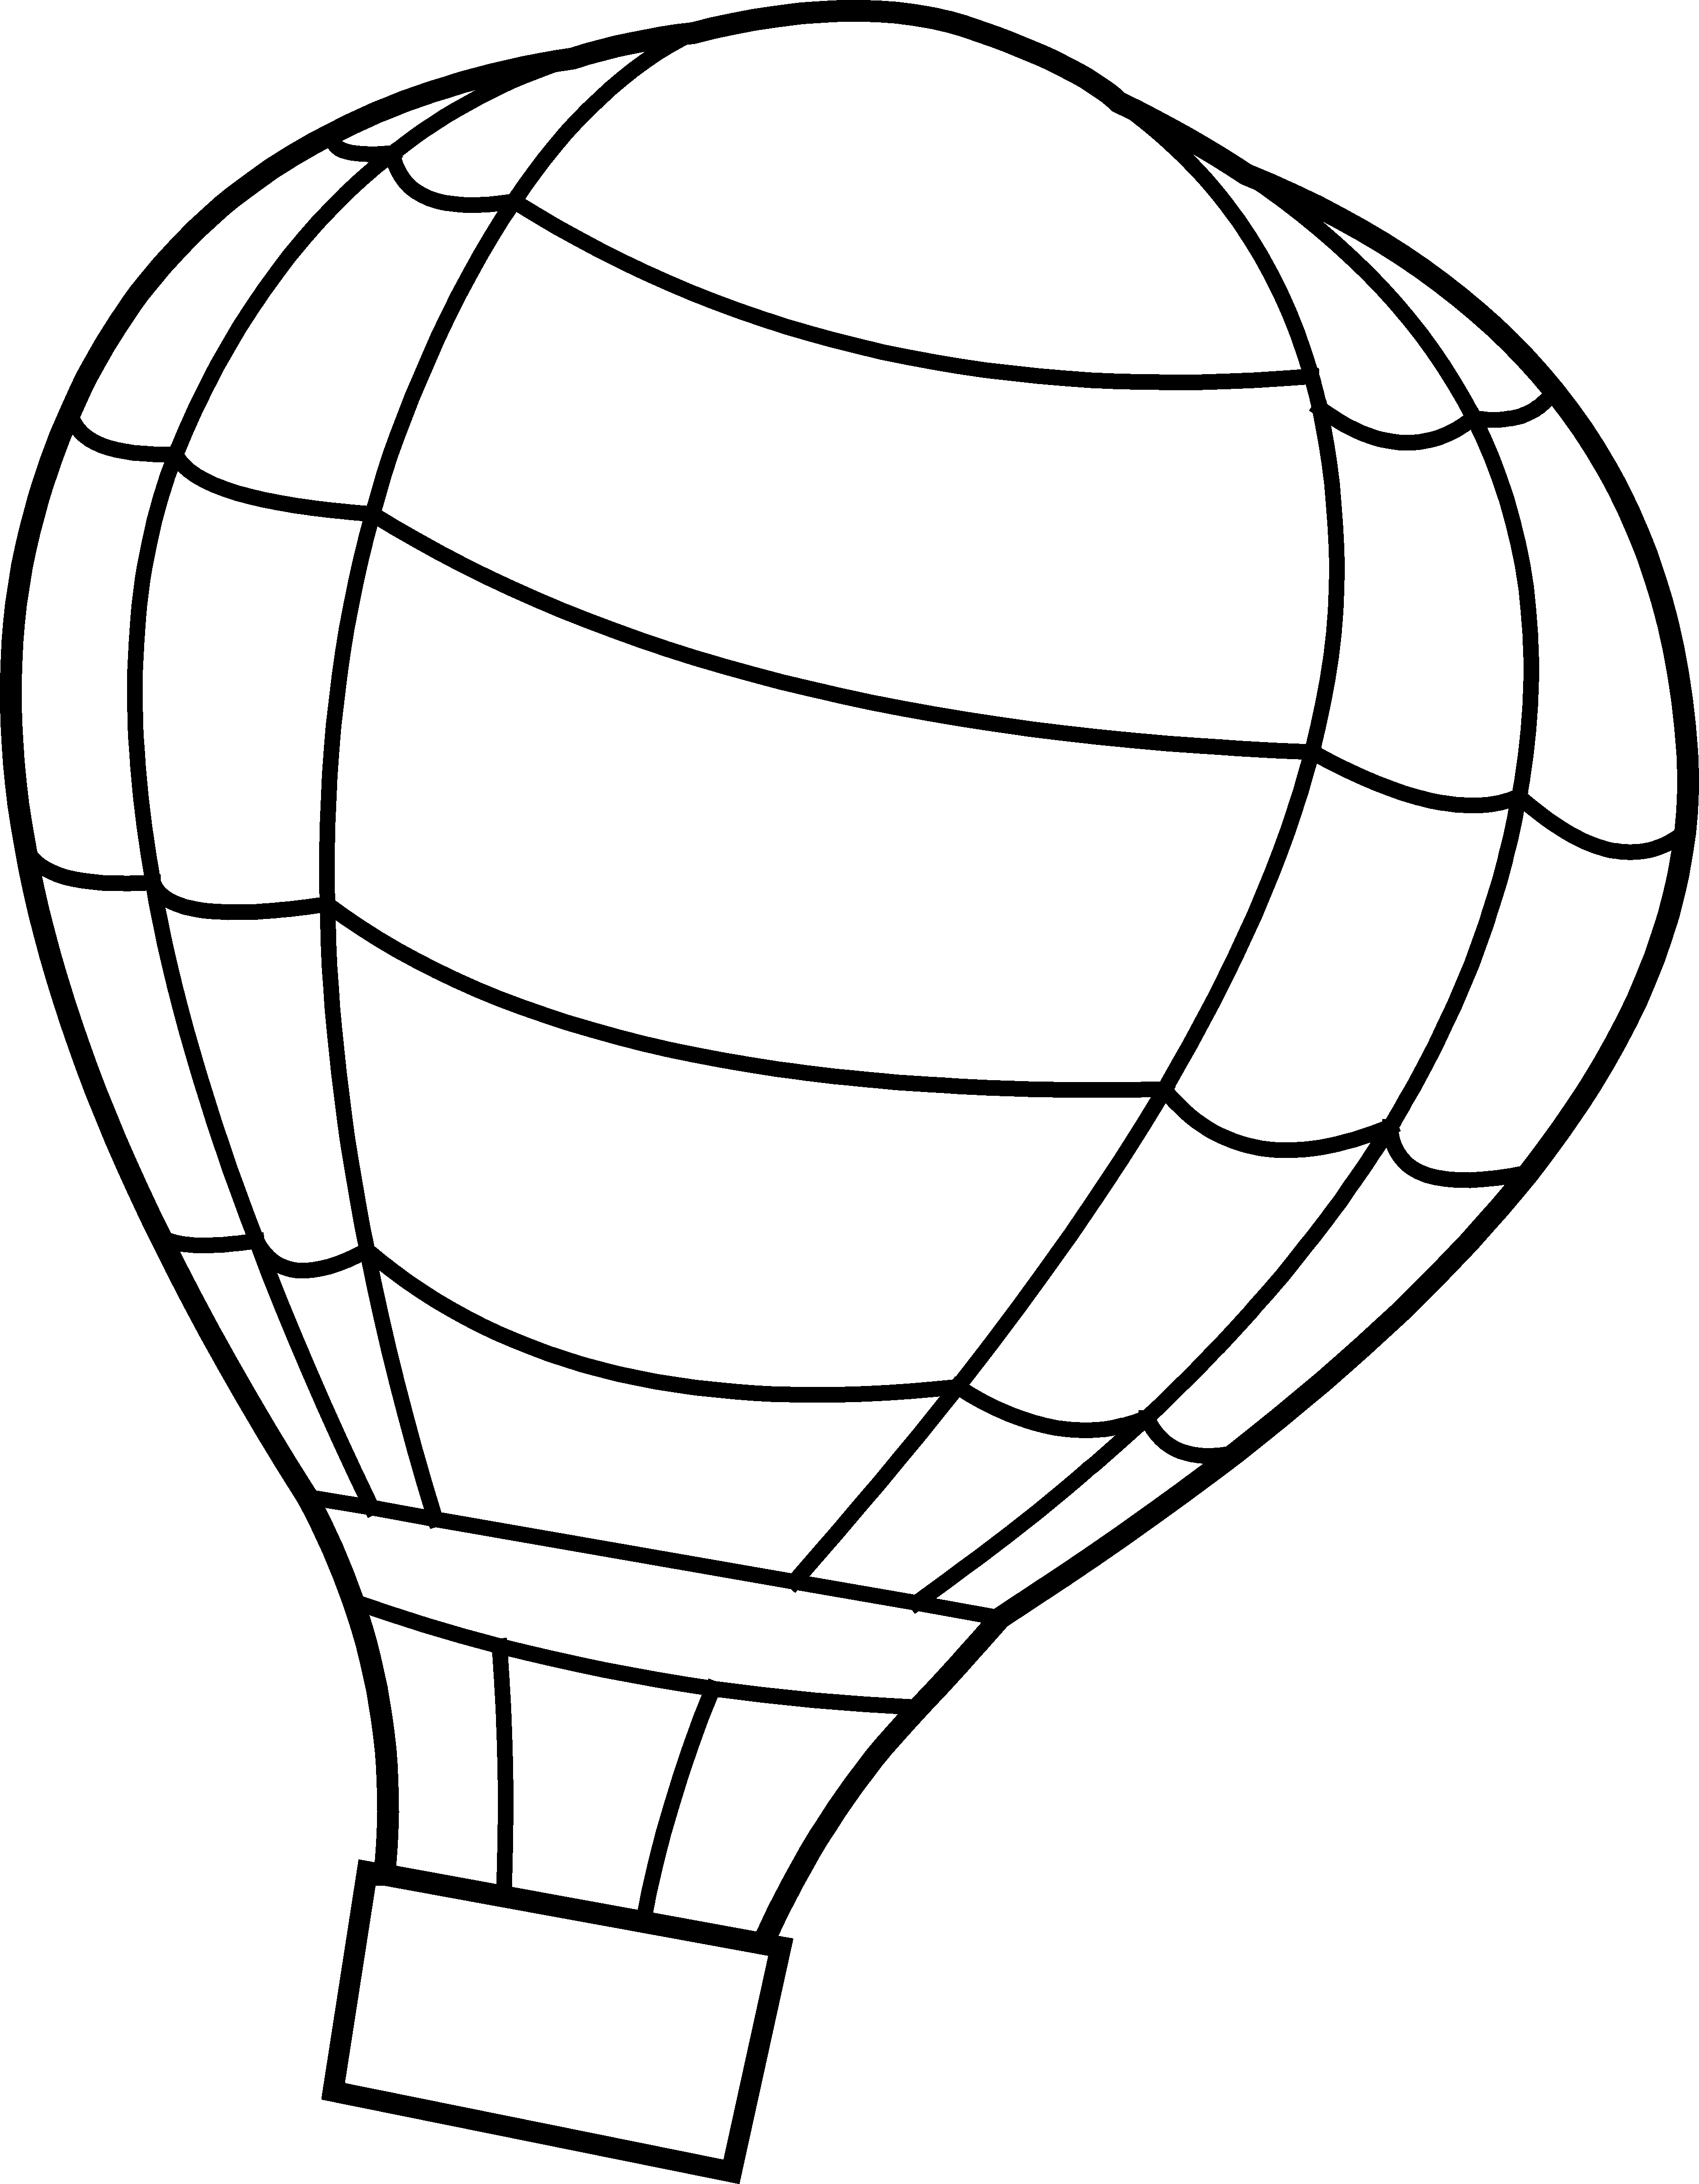 drawing of a hot air balloon hot air balloon high res illustrations getty images hot balloon a drawing air of